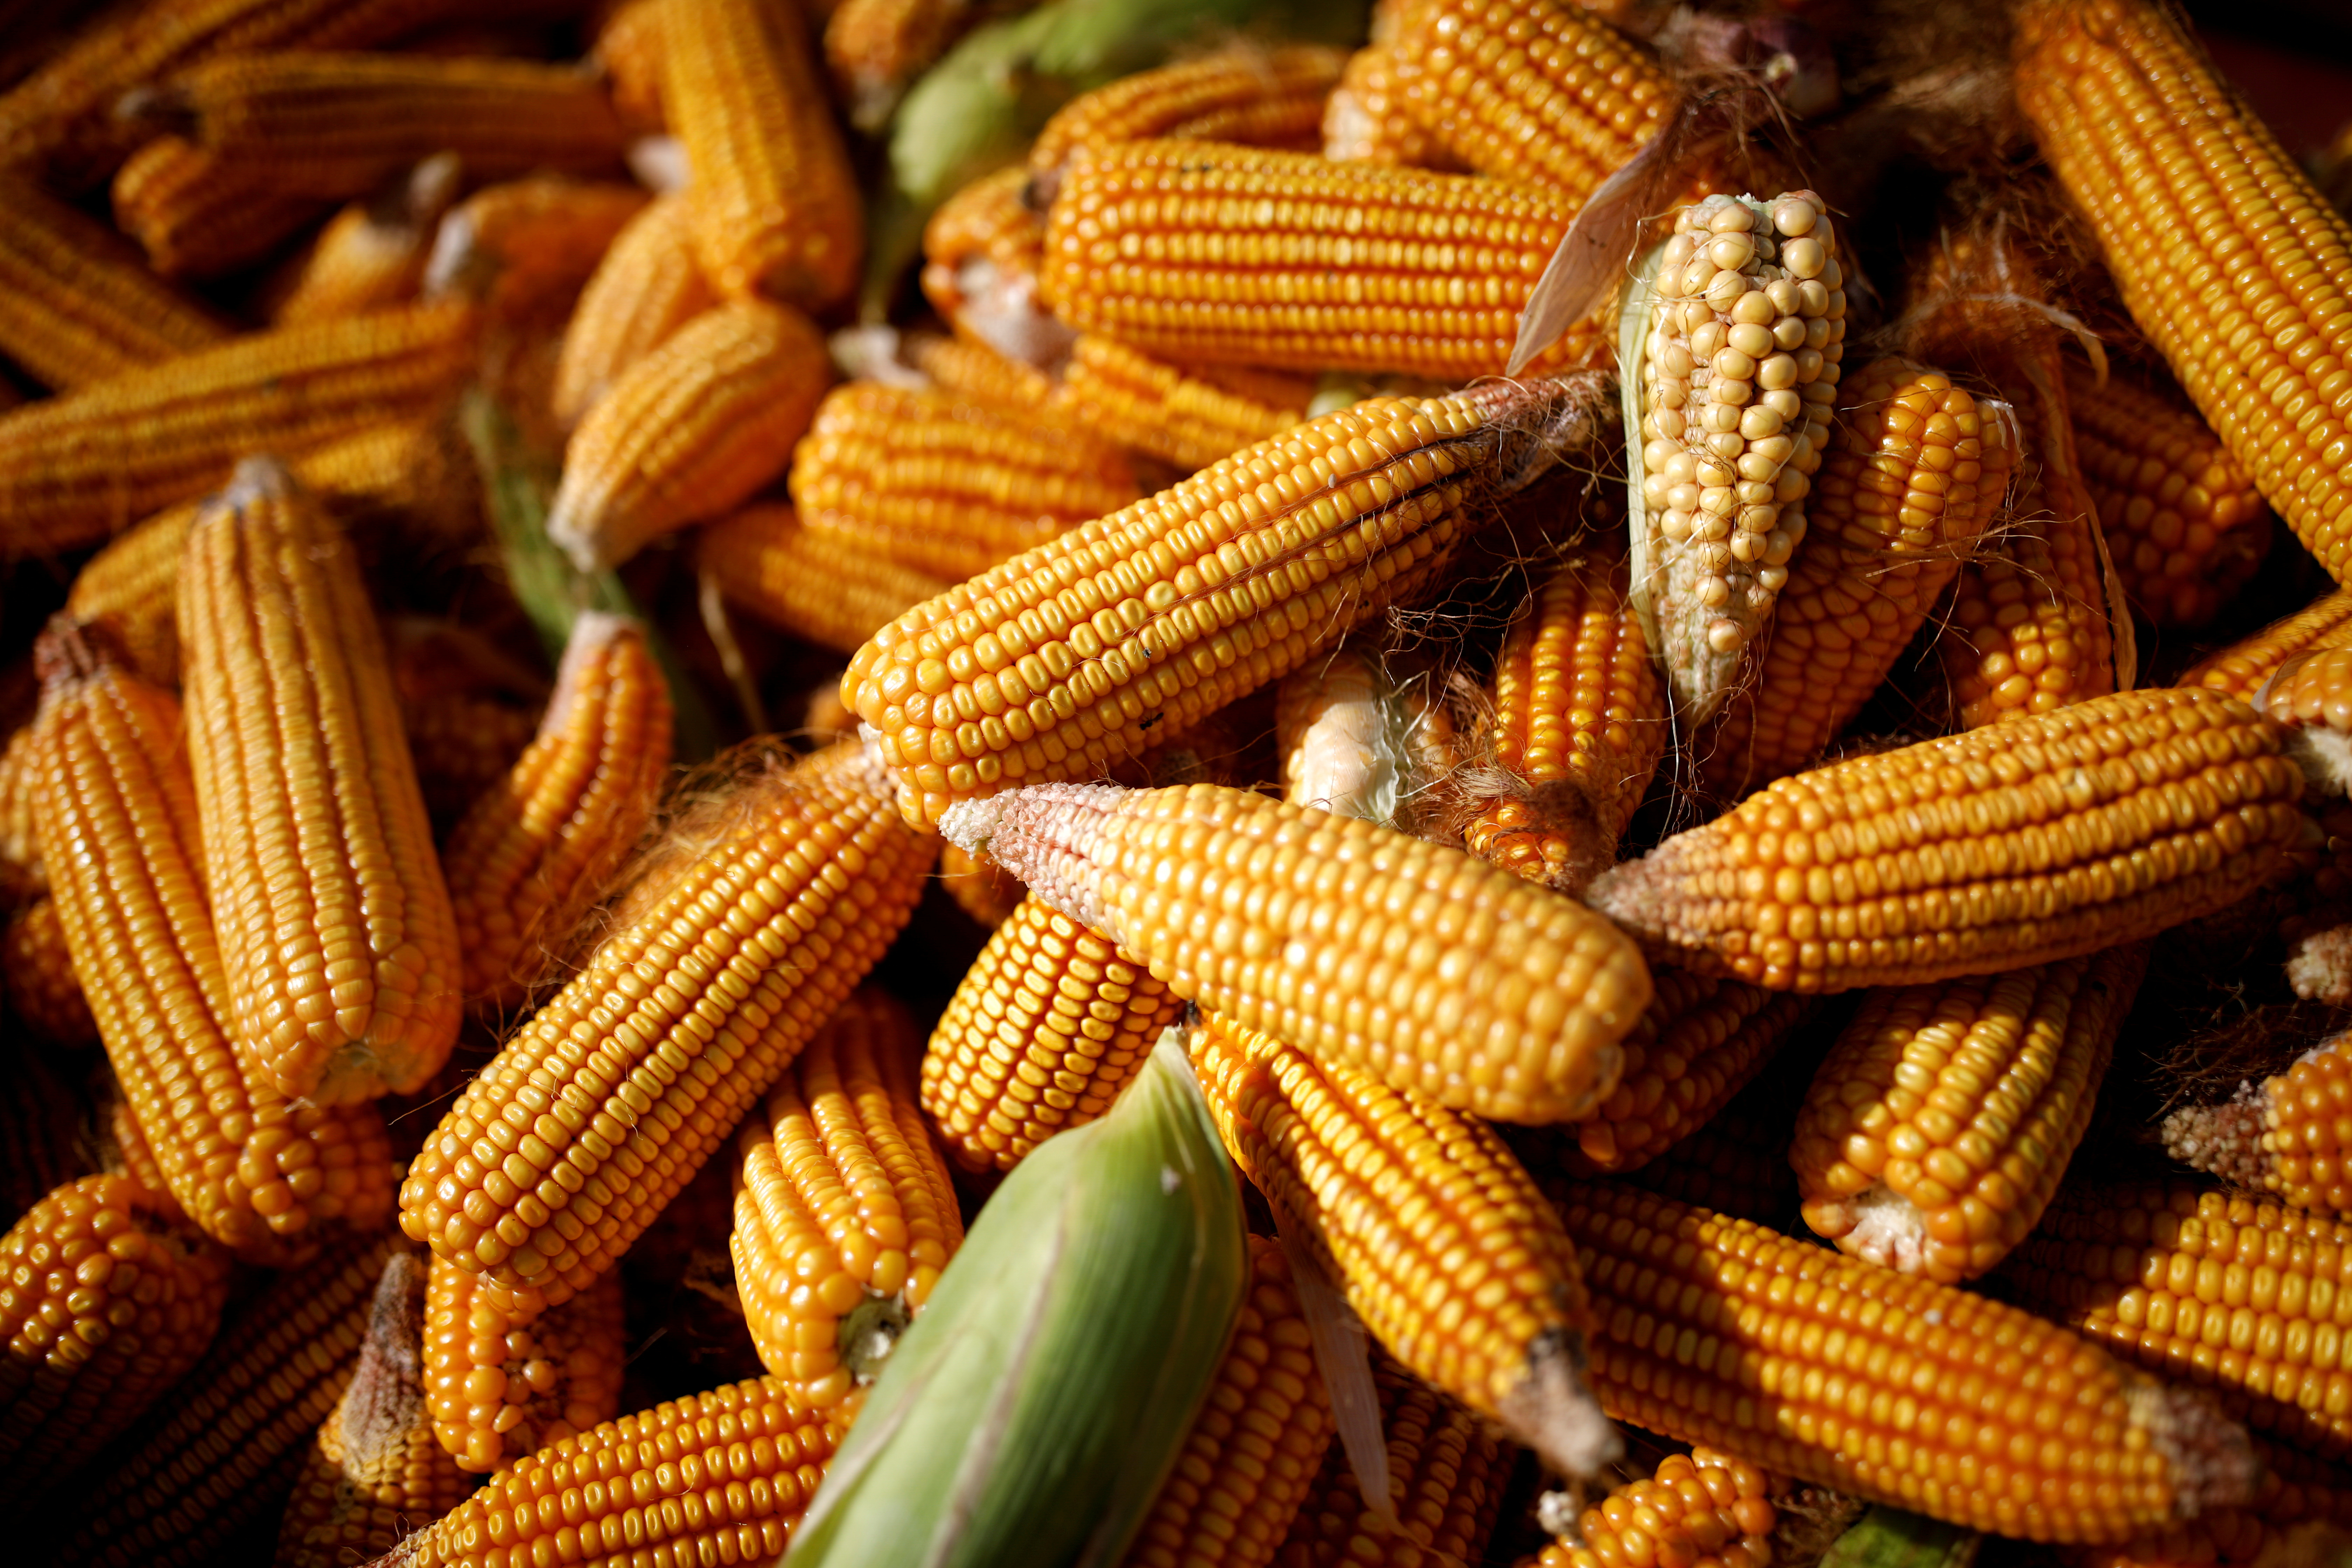 FILE PHOTO: Corn is piled in the back of a vehicle in a field on the outskirts of Jiayuguan, Gansu province, China September 28, 2020. REUTERS/Carlos Garcia Rawlins/File Photo